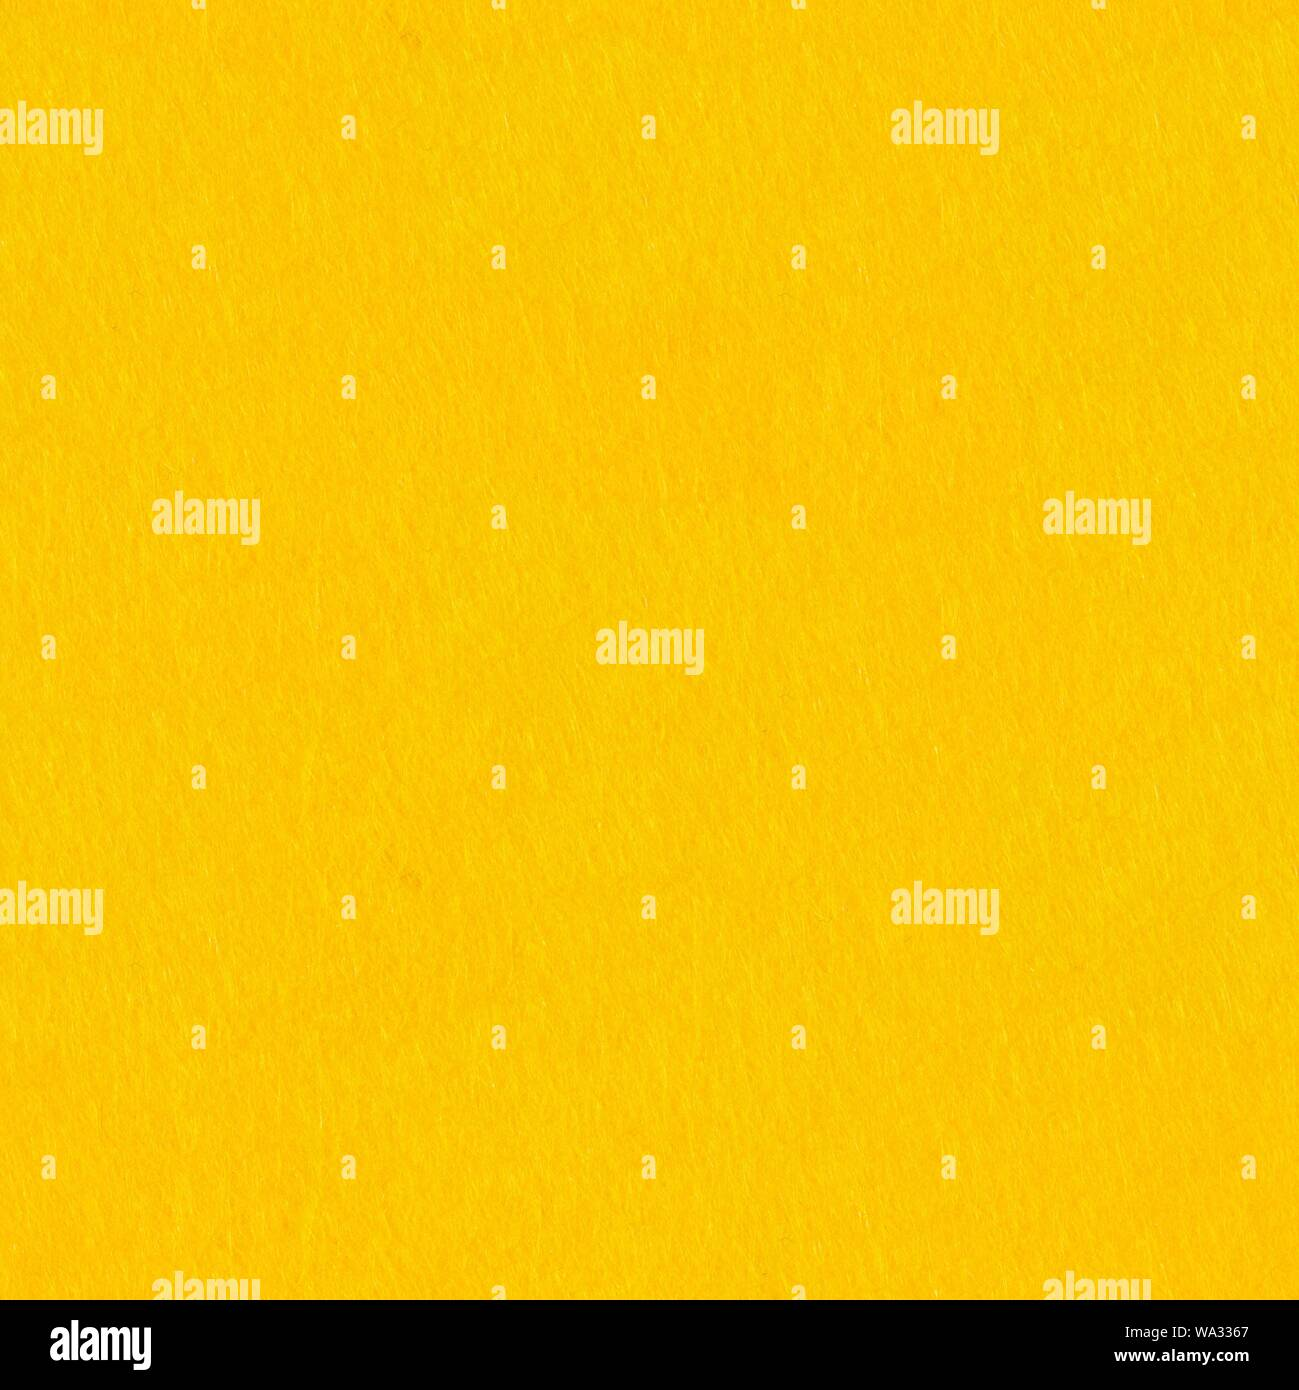 Abstract Background With Yellow Felt Seamless Square